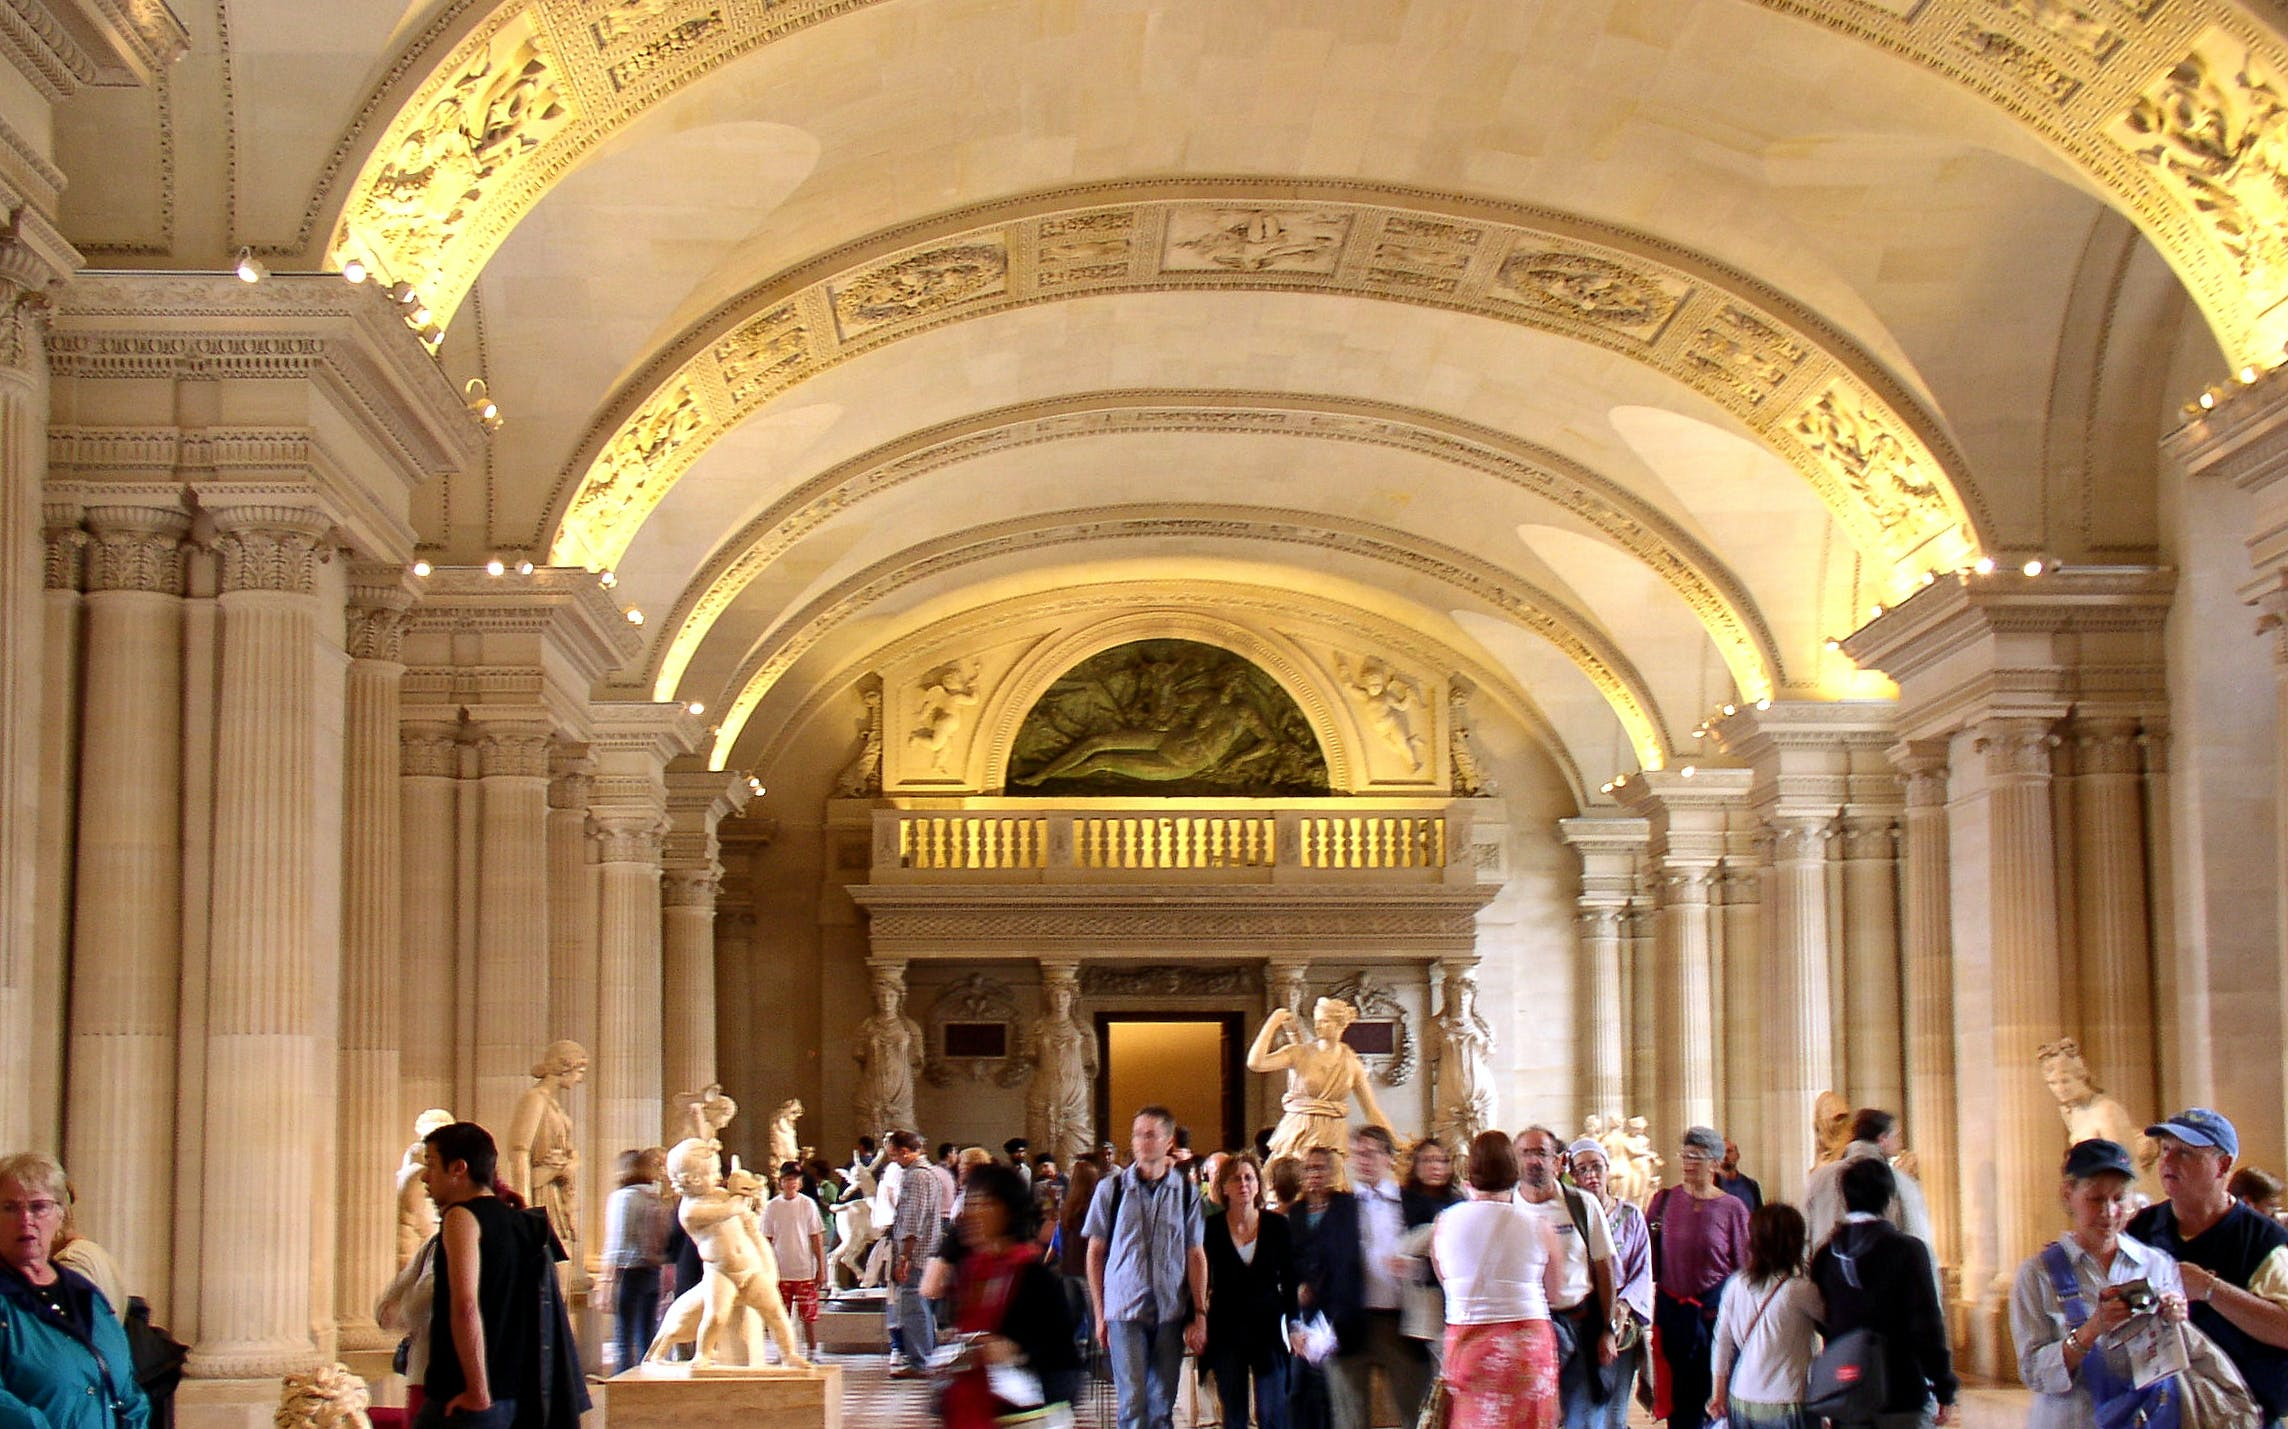 guided tour of the louvre museum with skip the line entry-2